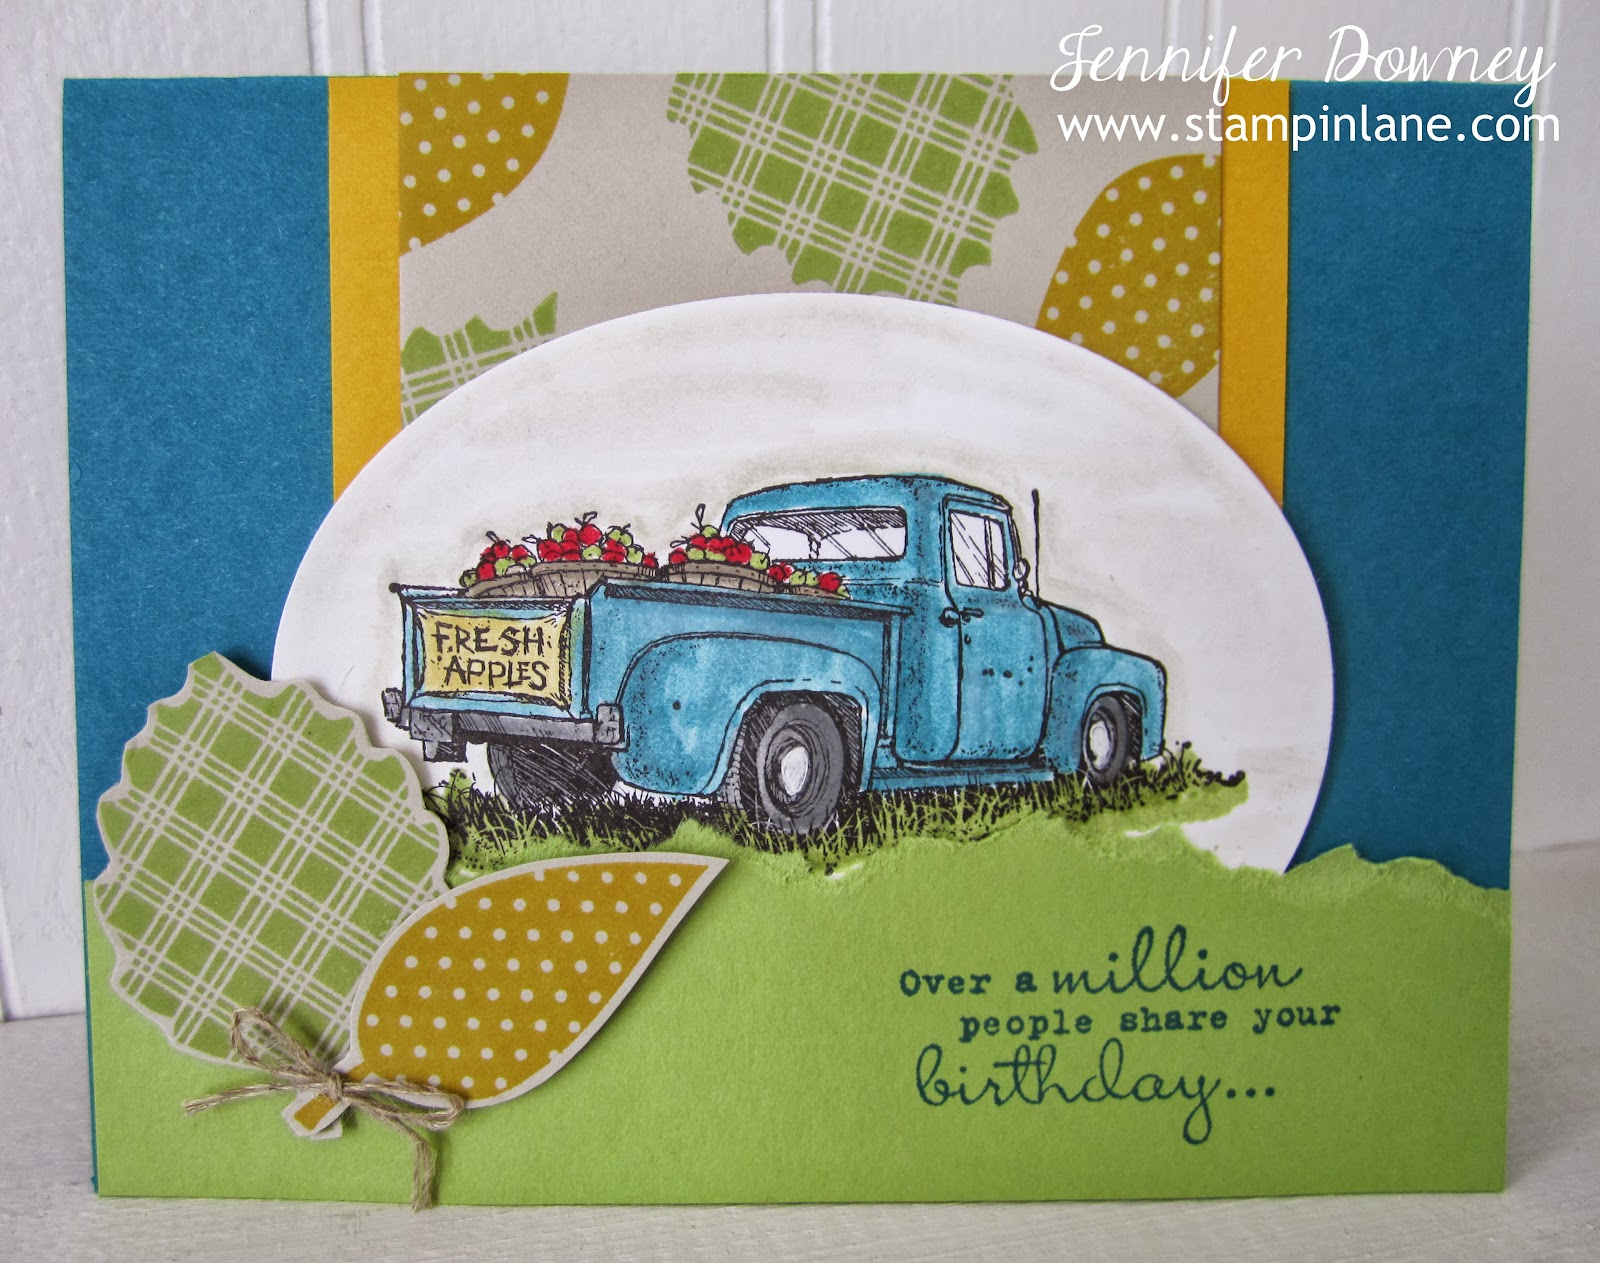 Happy Birthday Dave I Love The Vintage Truck From Oldie But Goodie Set Countryside